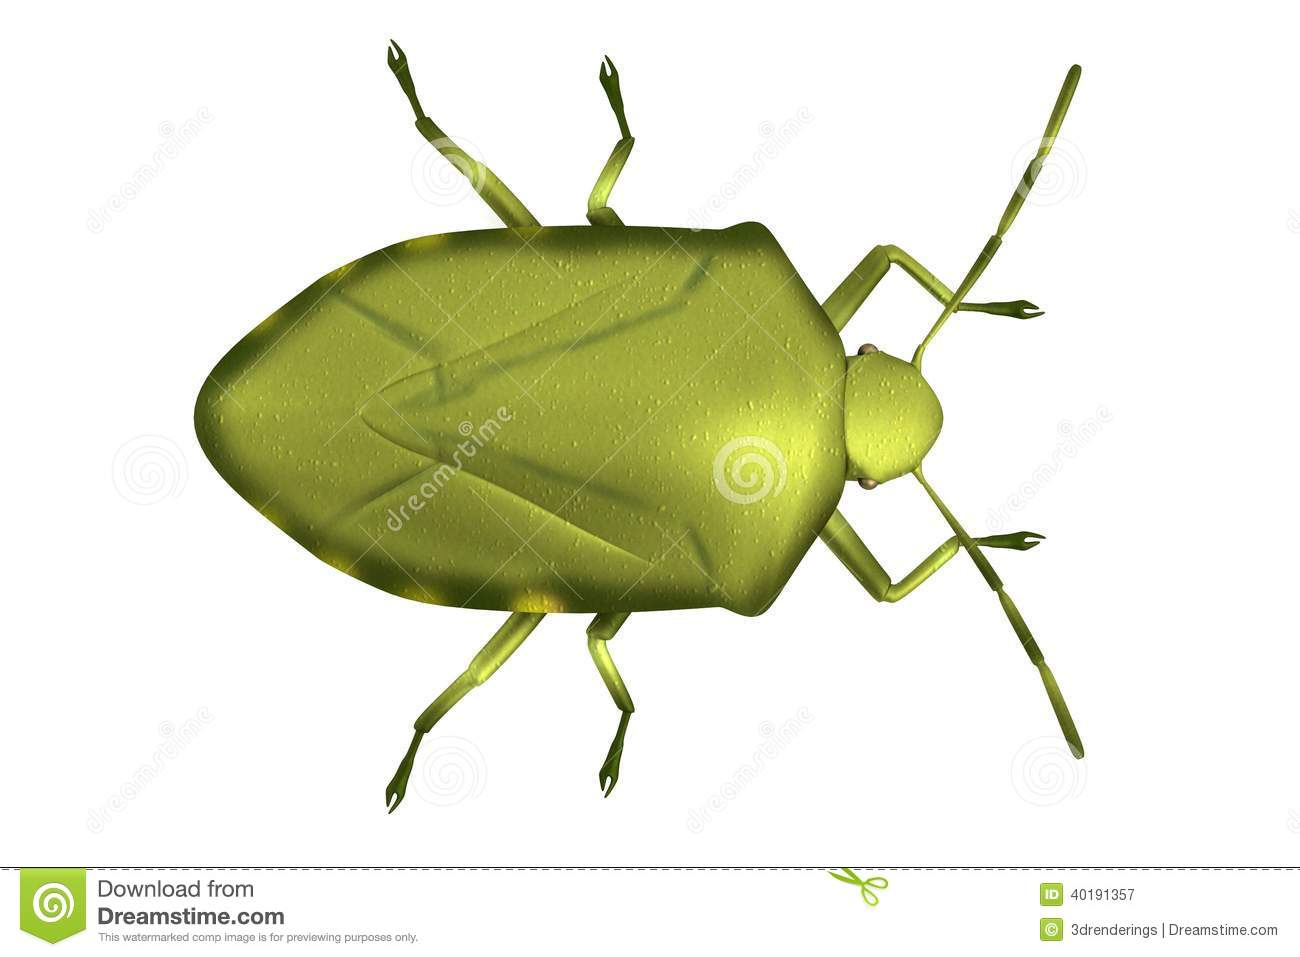 Stink Bug clipart #17, Download drawings